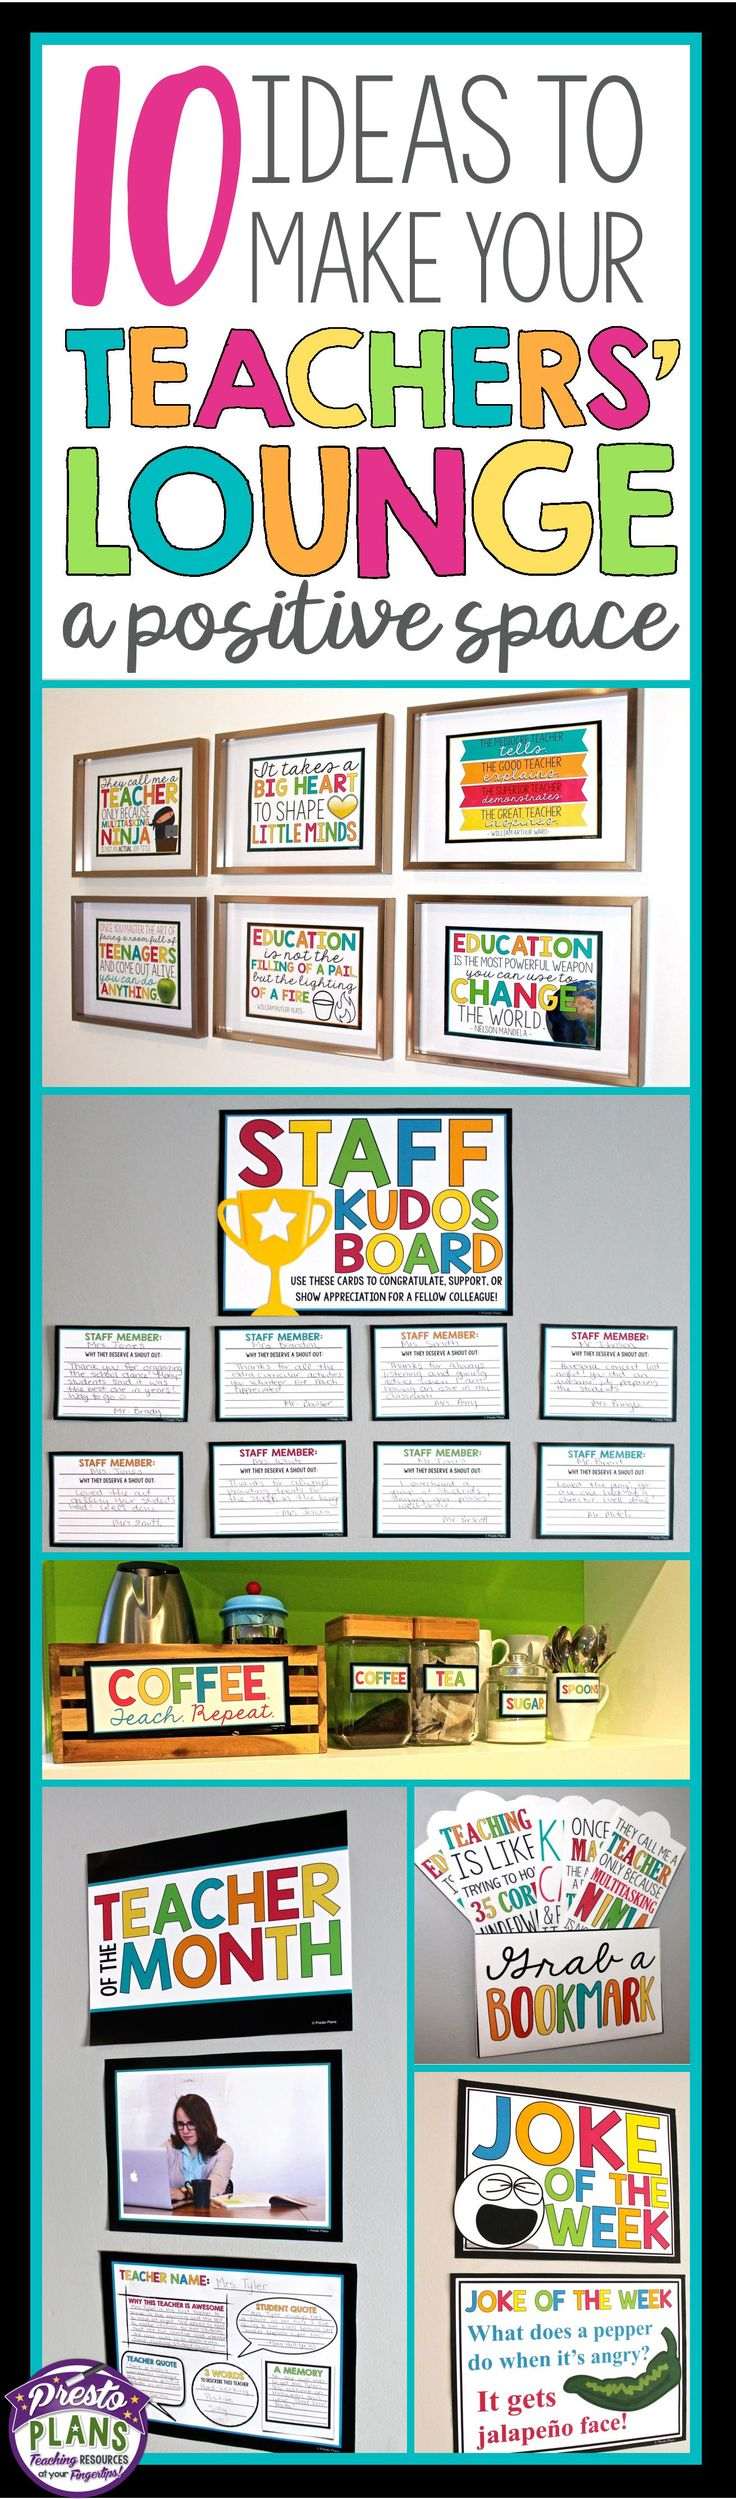 Teacher's Lounge needs a positive upgrade! http://www.giftideascorner.com/gifts-coworkers/